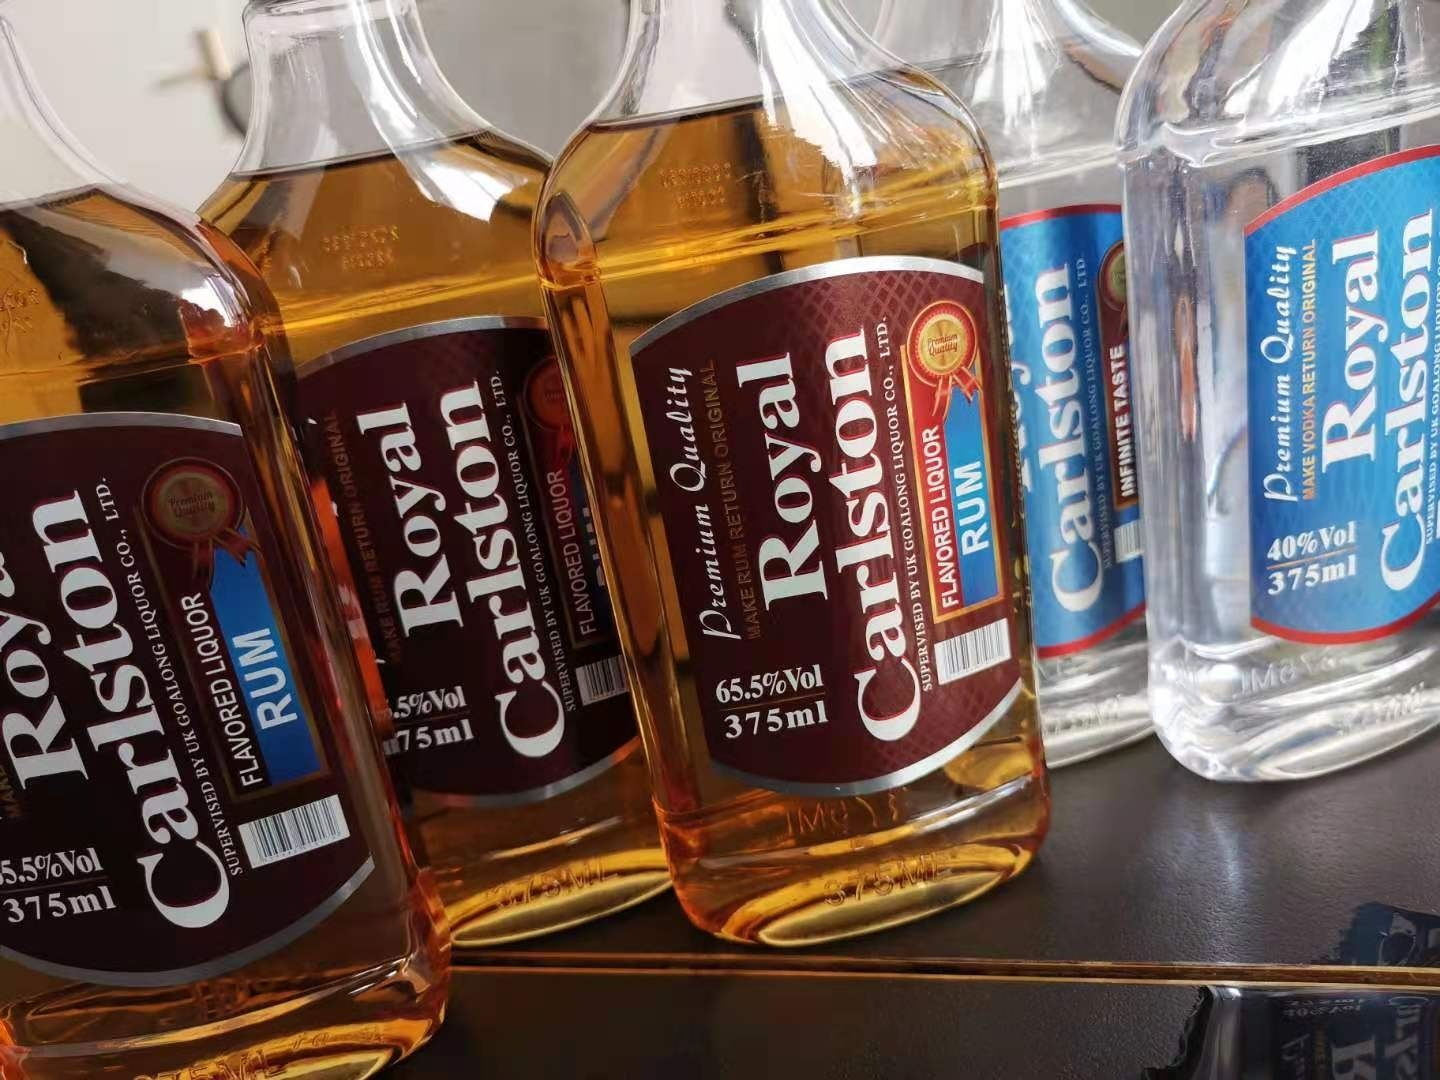 Royal Carlston Rum 375ml 65.5% abv